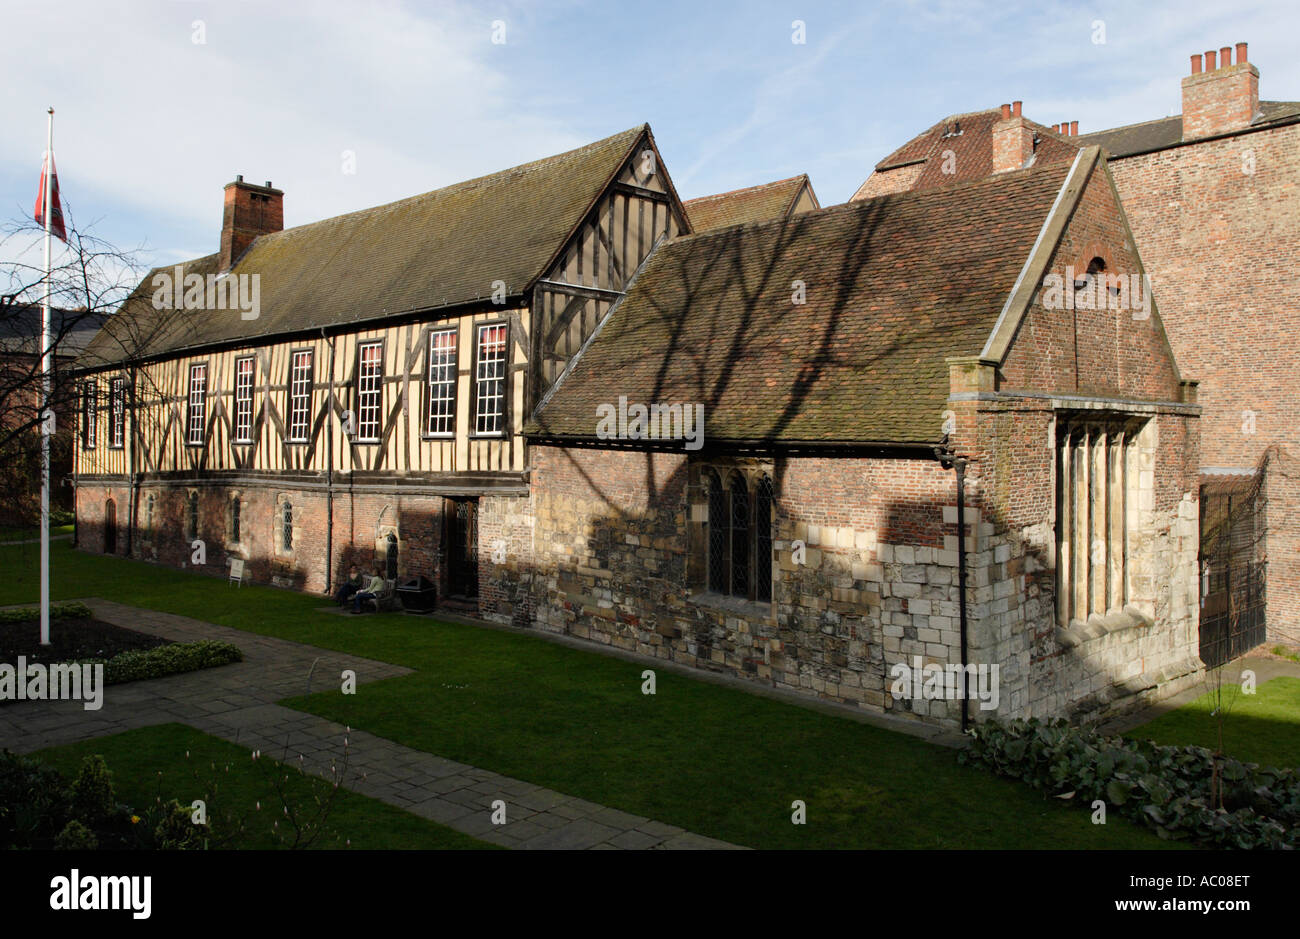 Merchant Adventurers Hall, York - Stock Image